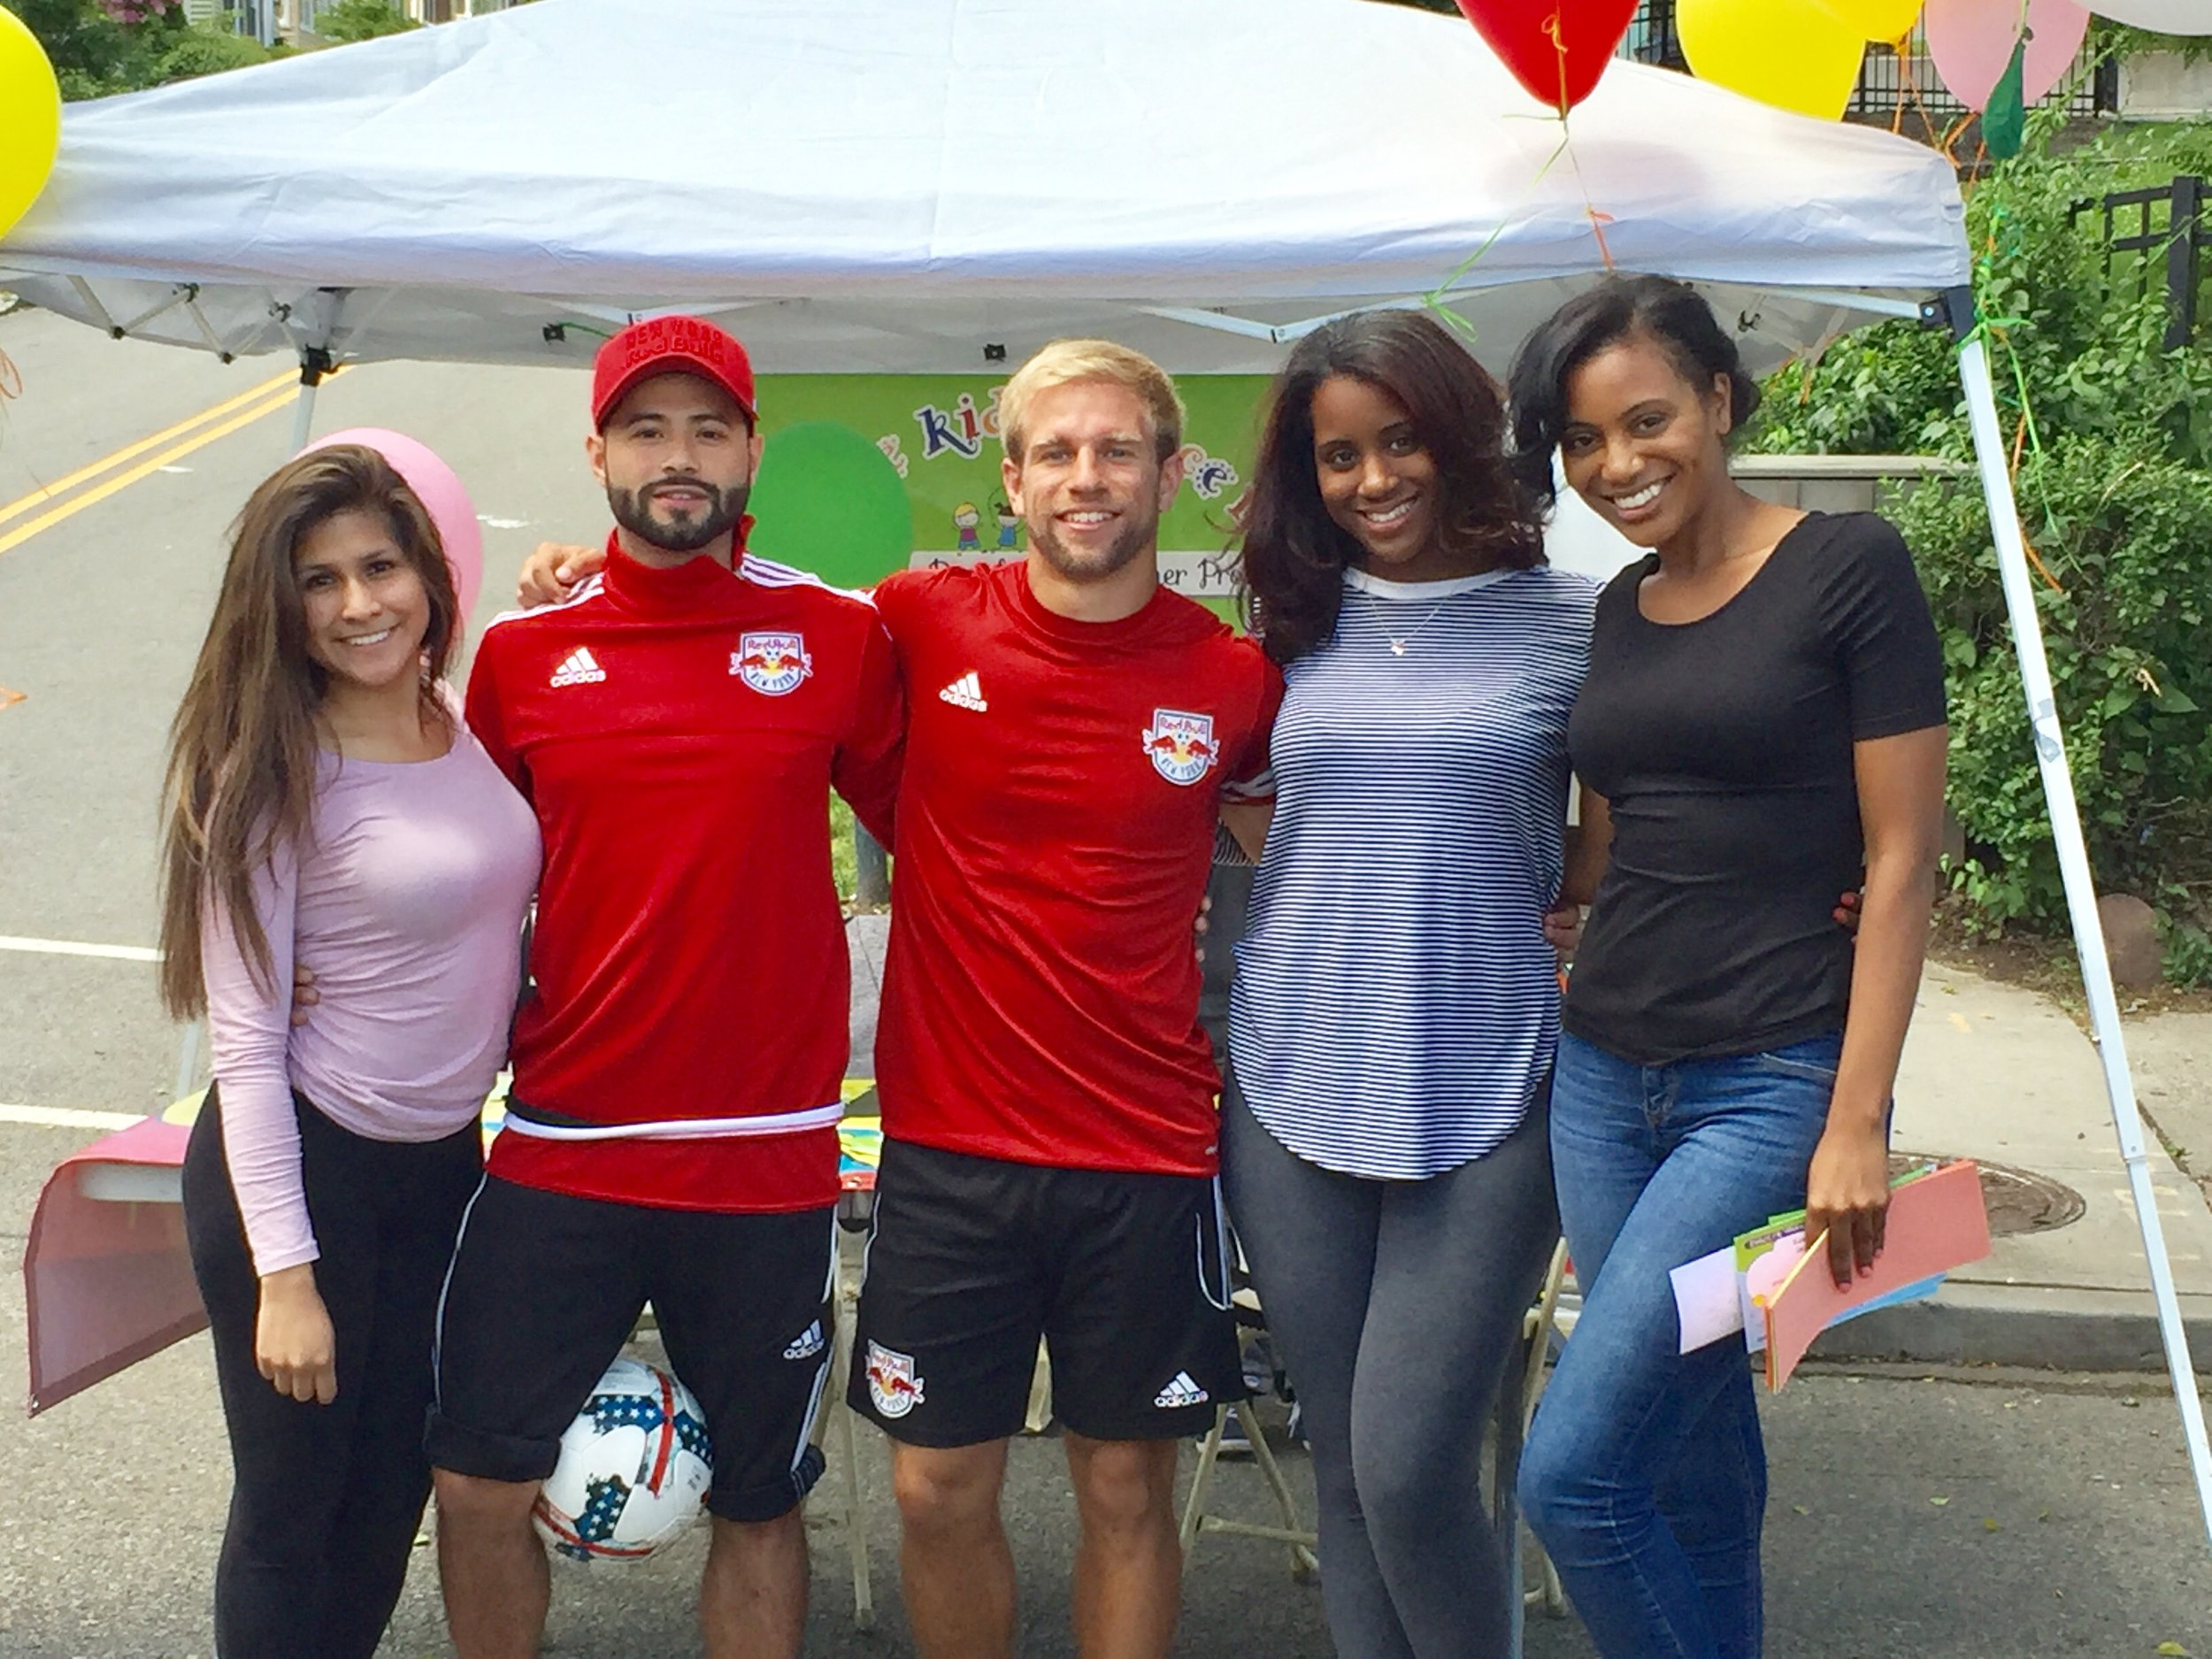 The New York Red Bulls Street Team joined us.